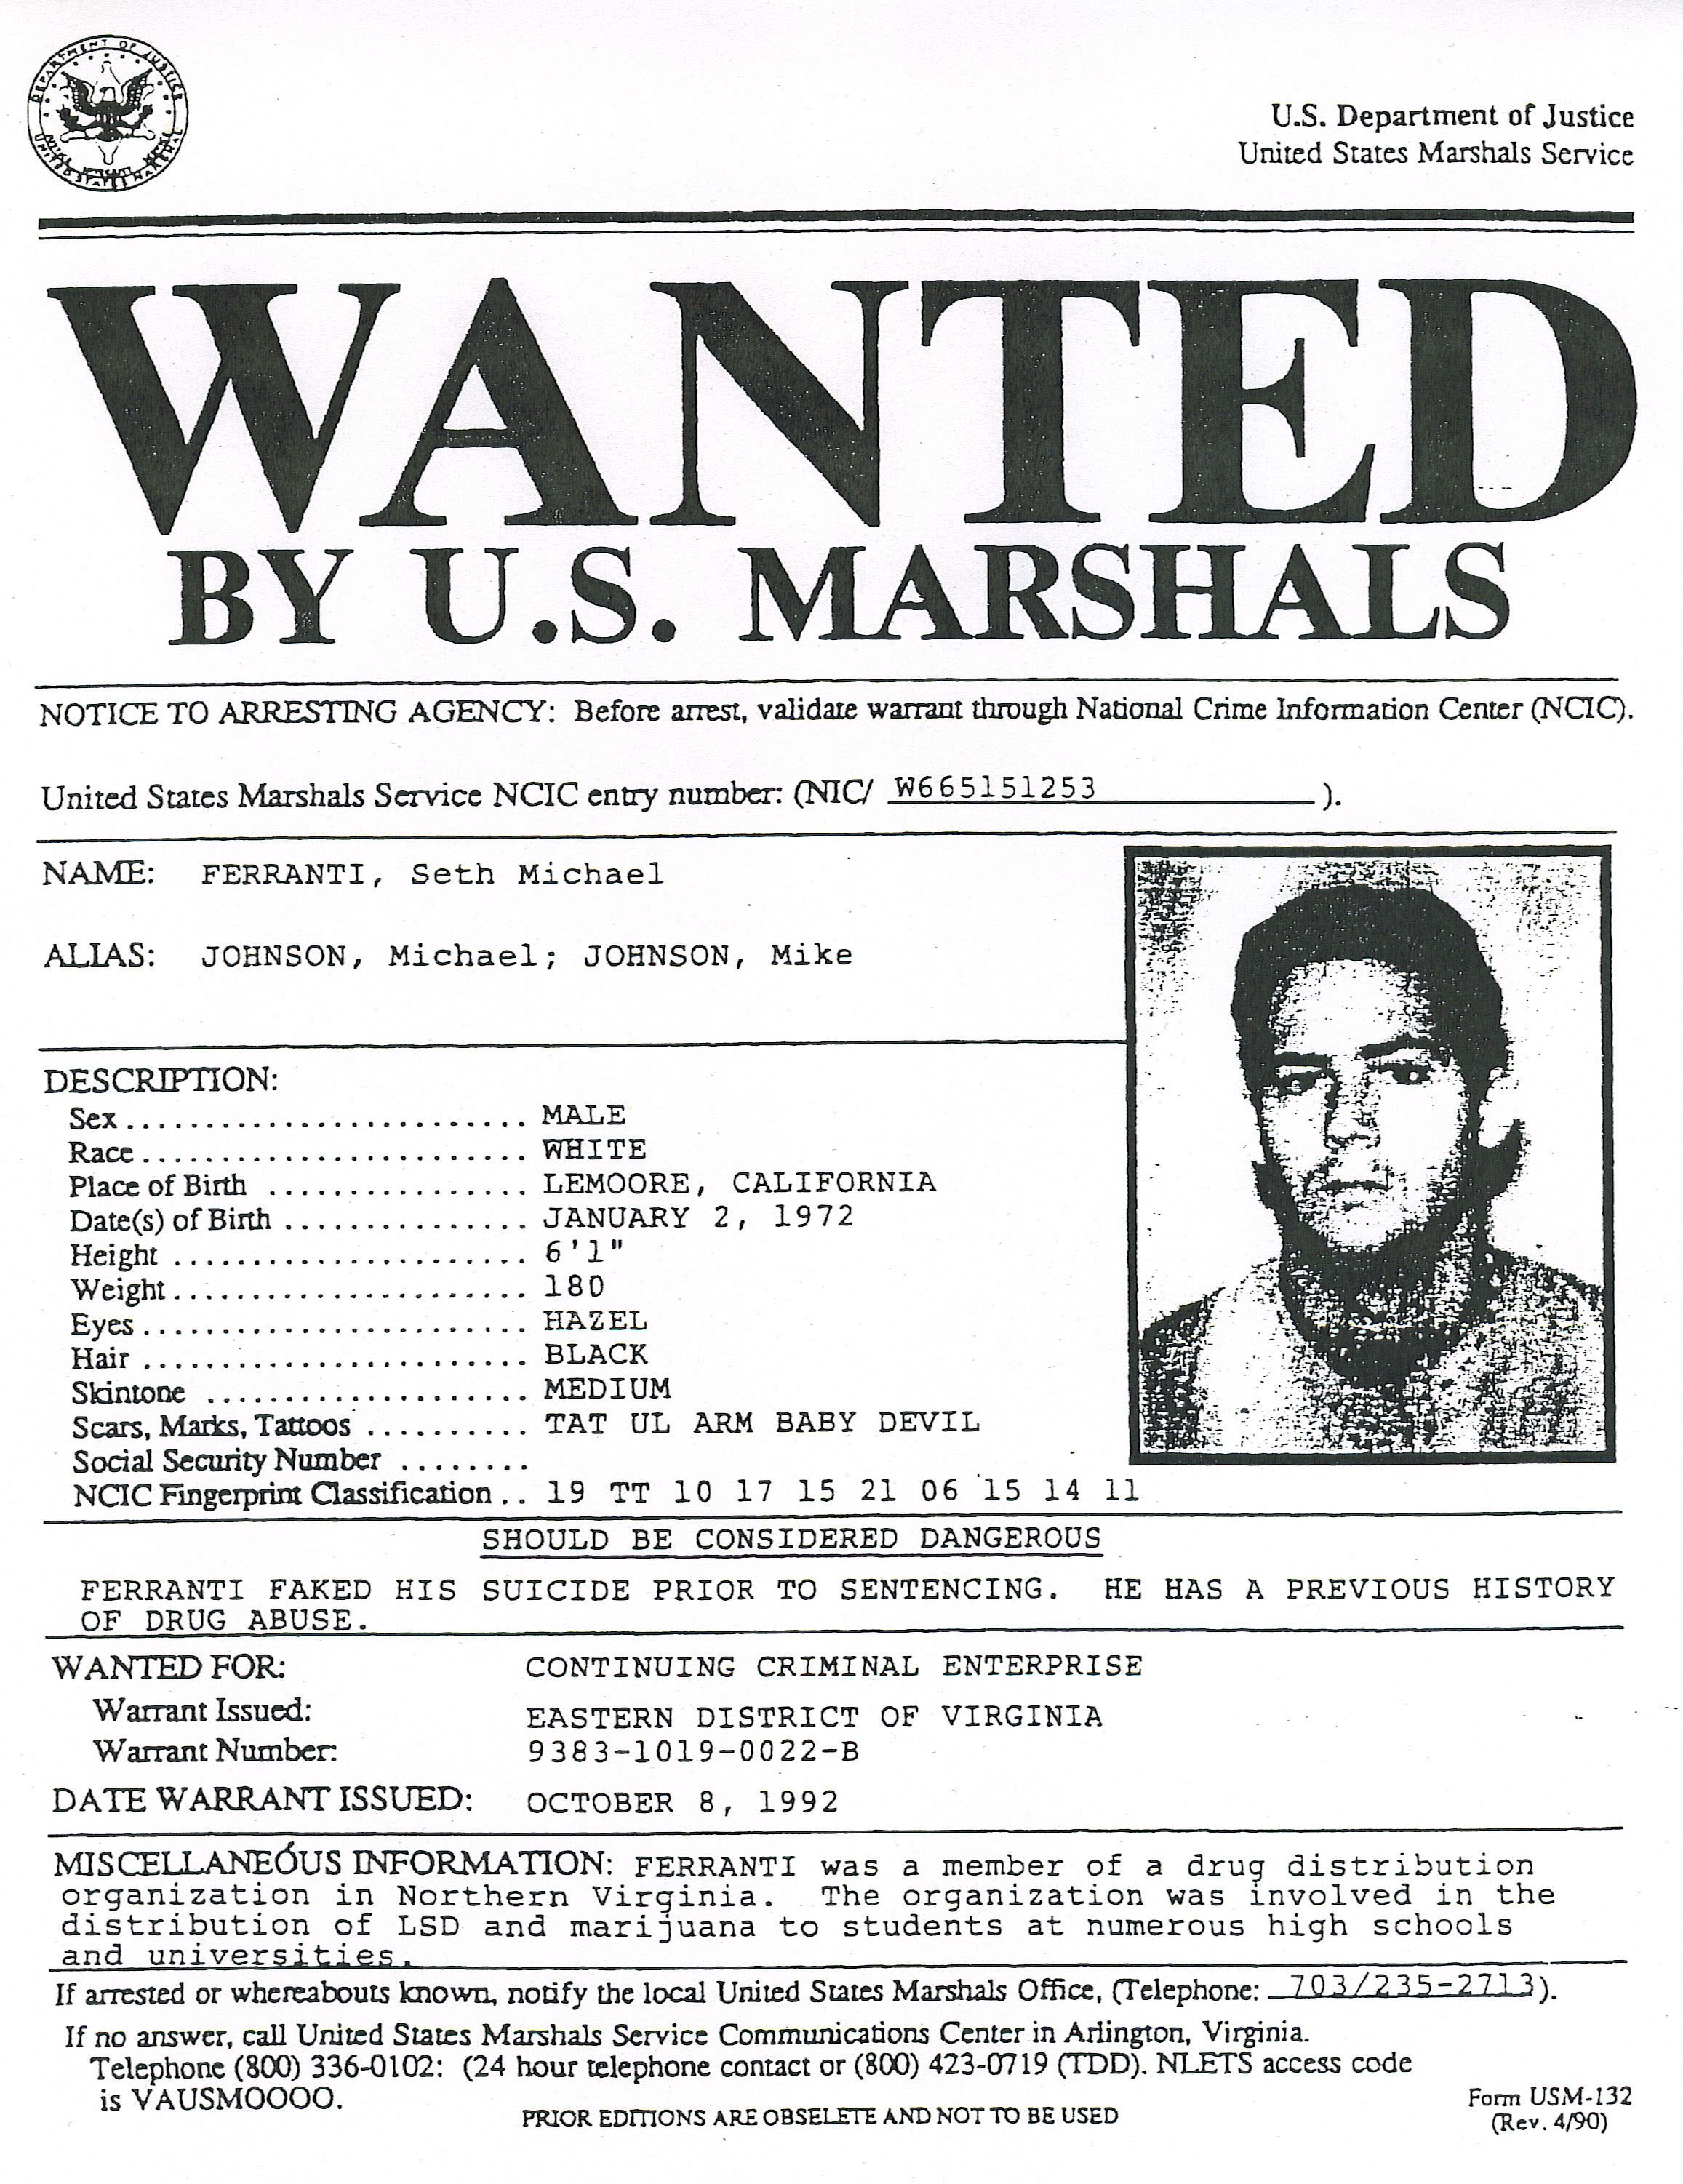 Nice When I Went On The Run In 1991, To Avoid Facing A 25 Year Prison Sentence  For Selling LSD And Marijuana At East Coast Colleges, I Was Named To The US  ... With Criminal Wanted Poster